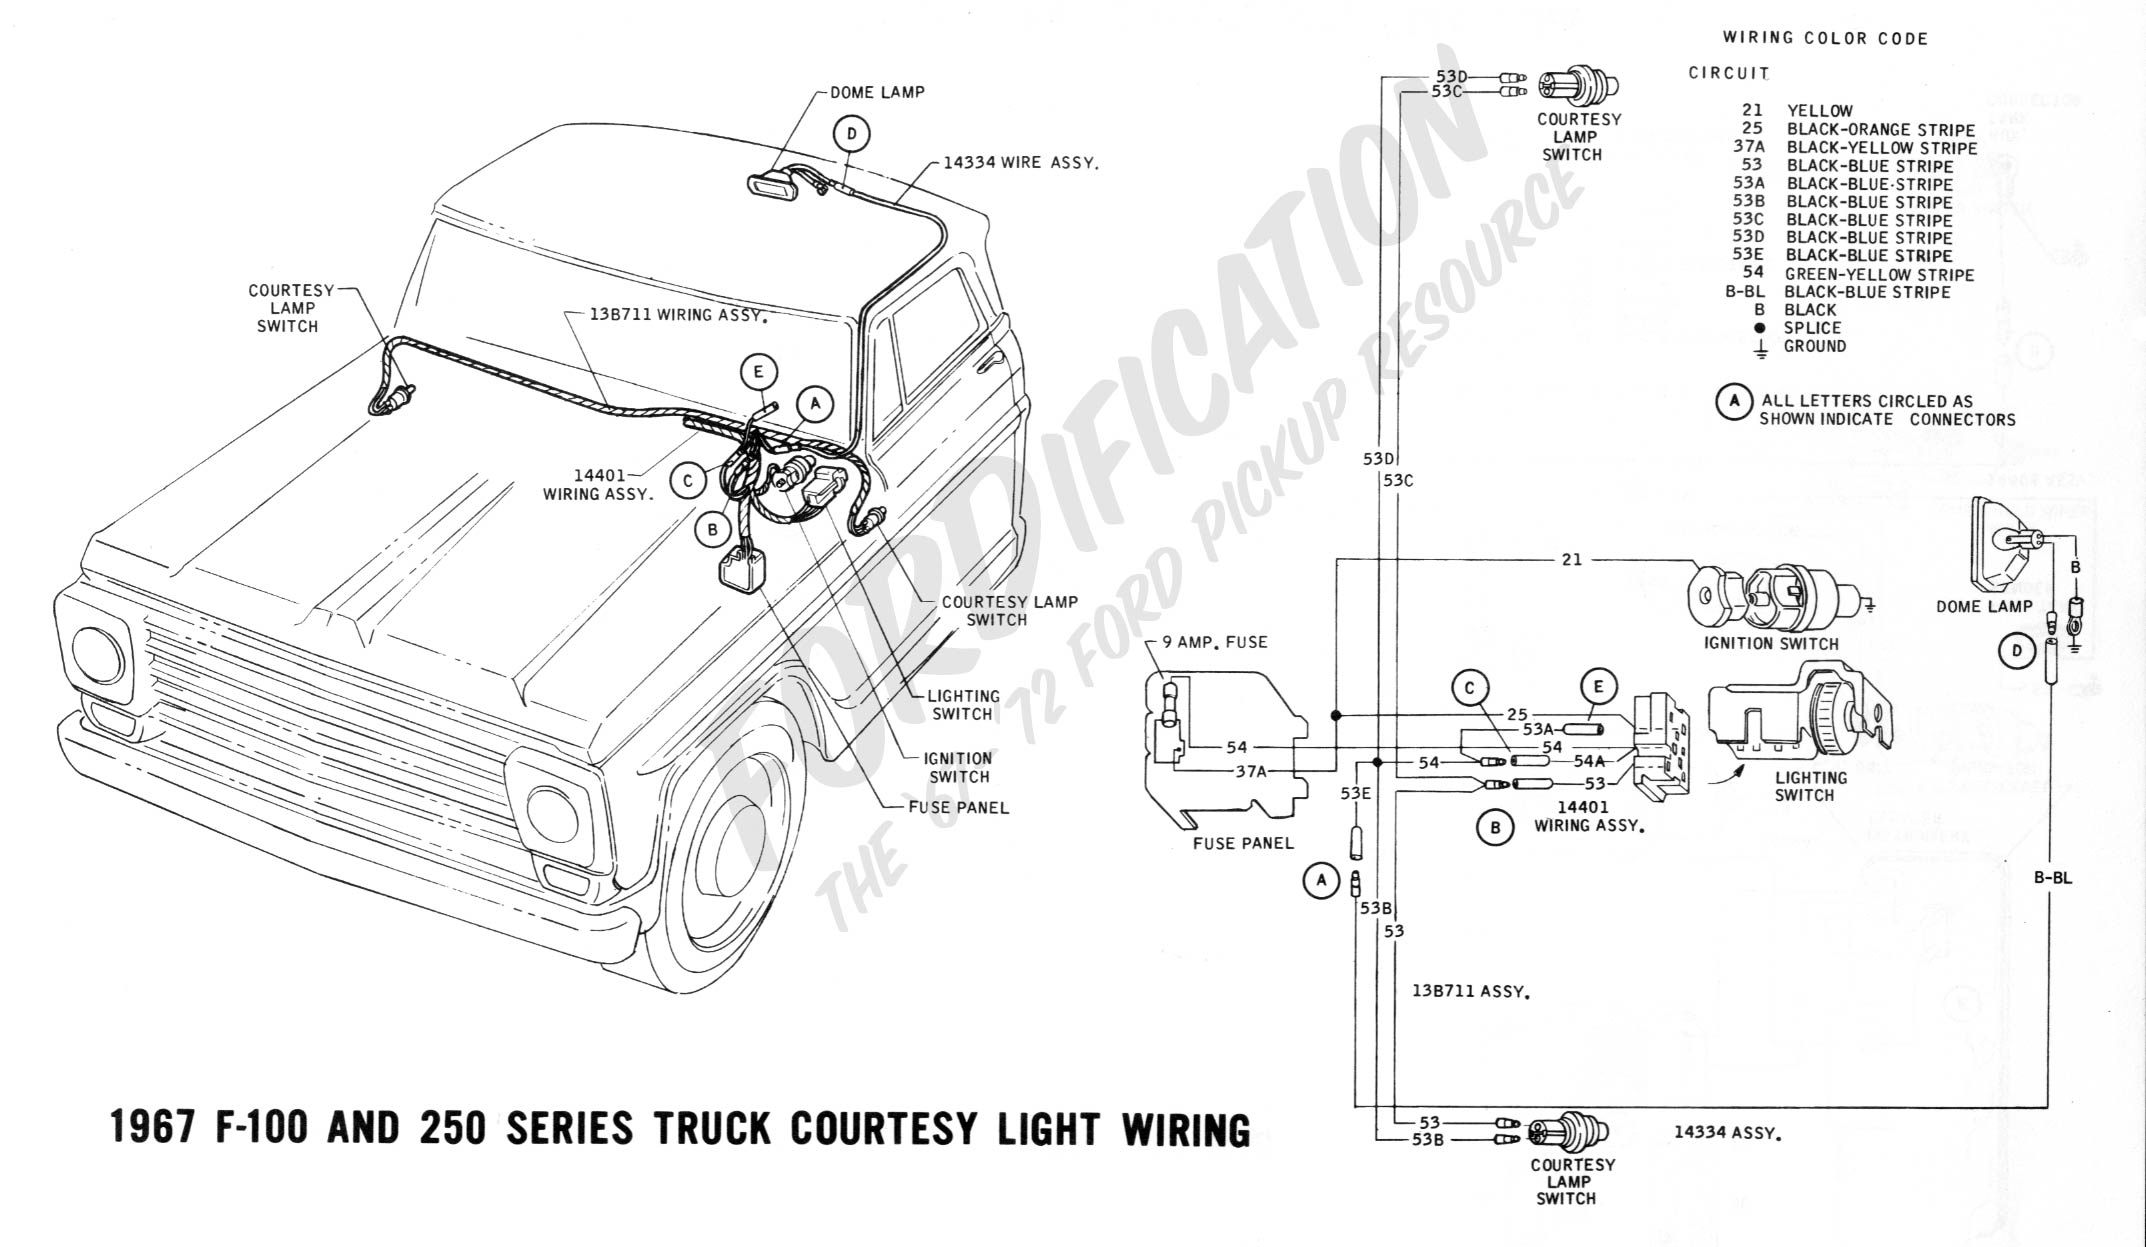 wiring 1967courtesylight ford truck technical drawings and schematics section h wiring 1964 ford wiring diagram at aneh.co